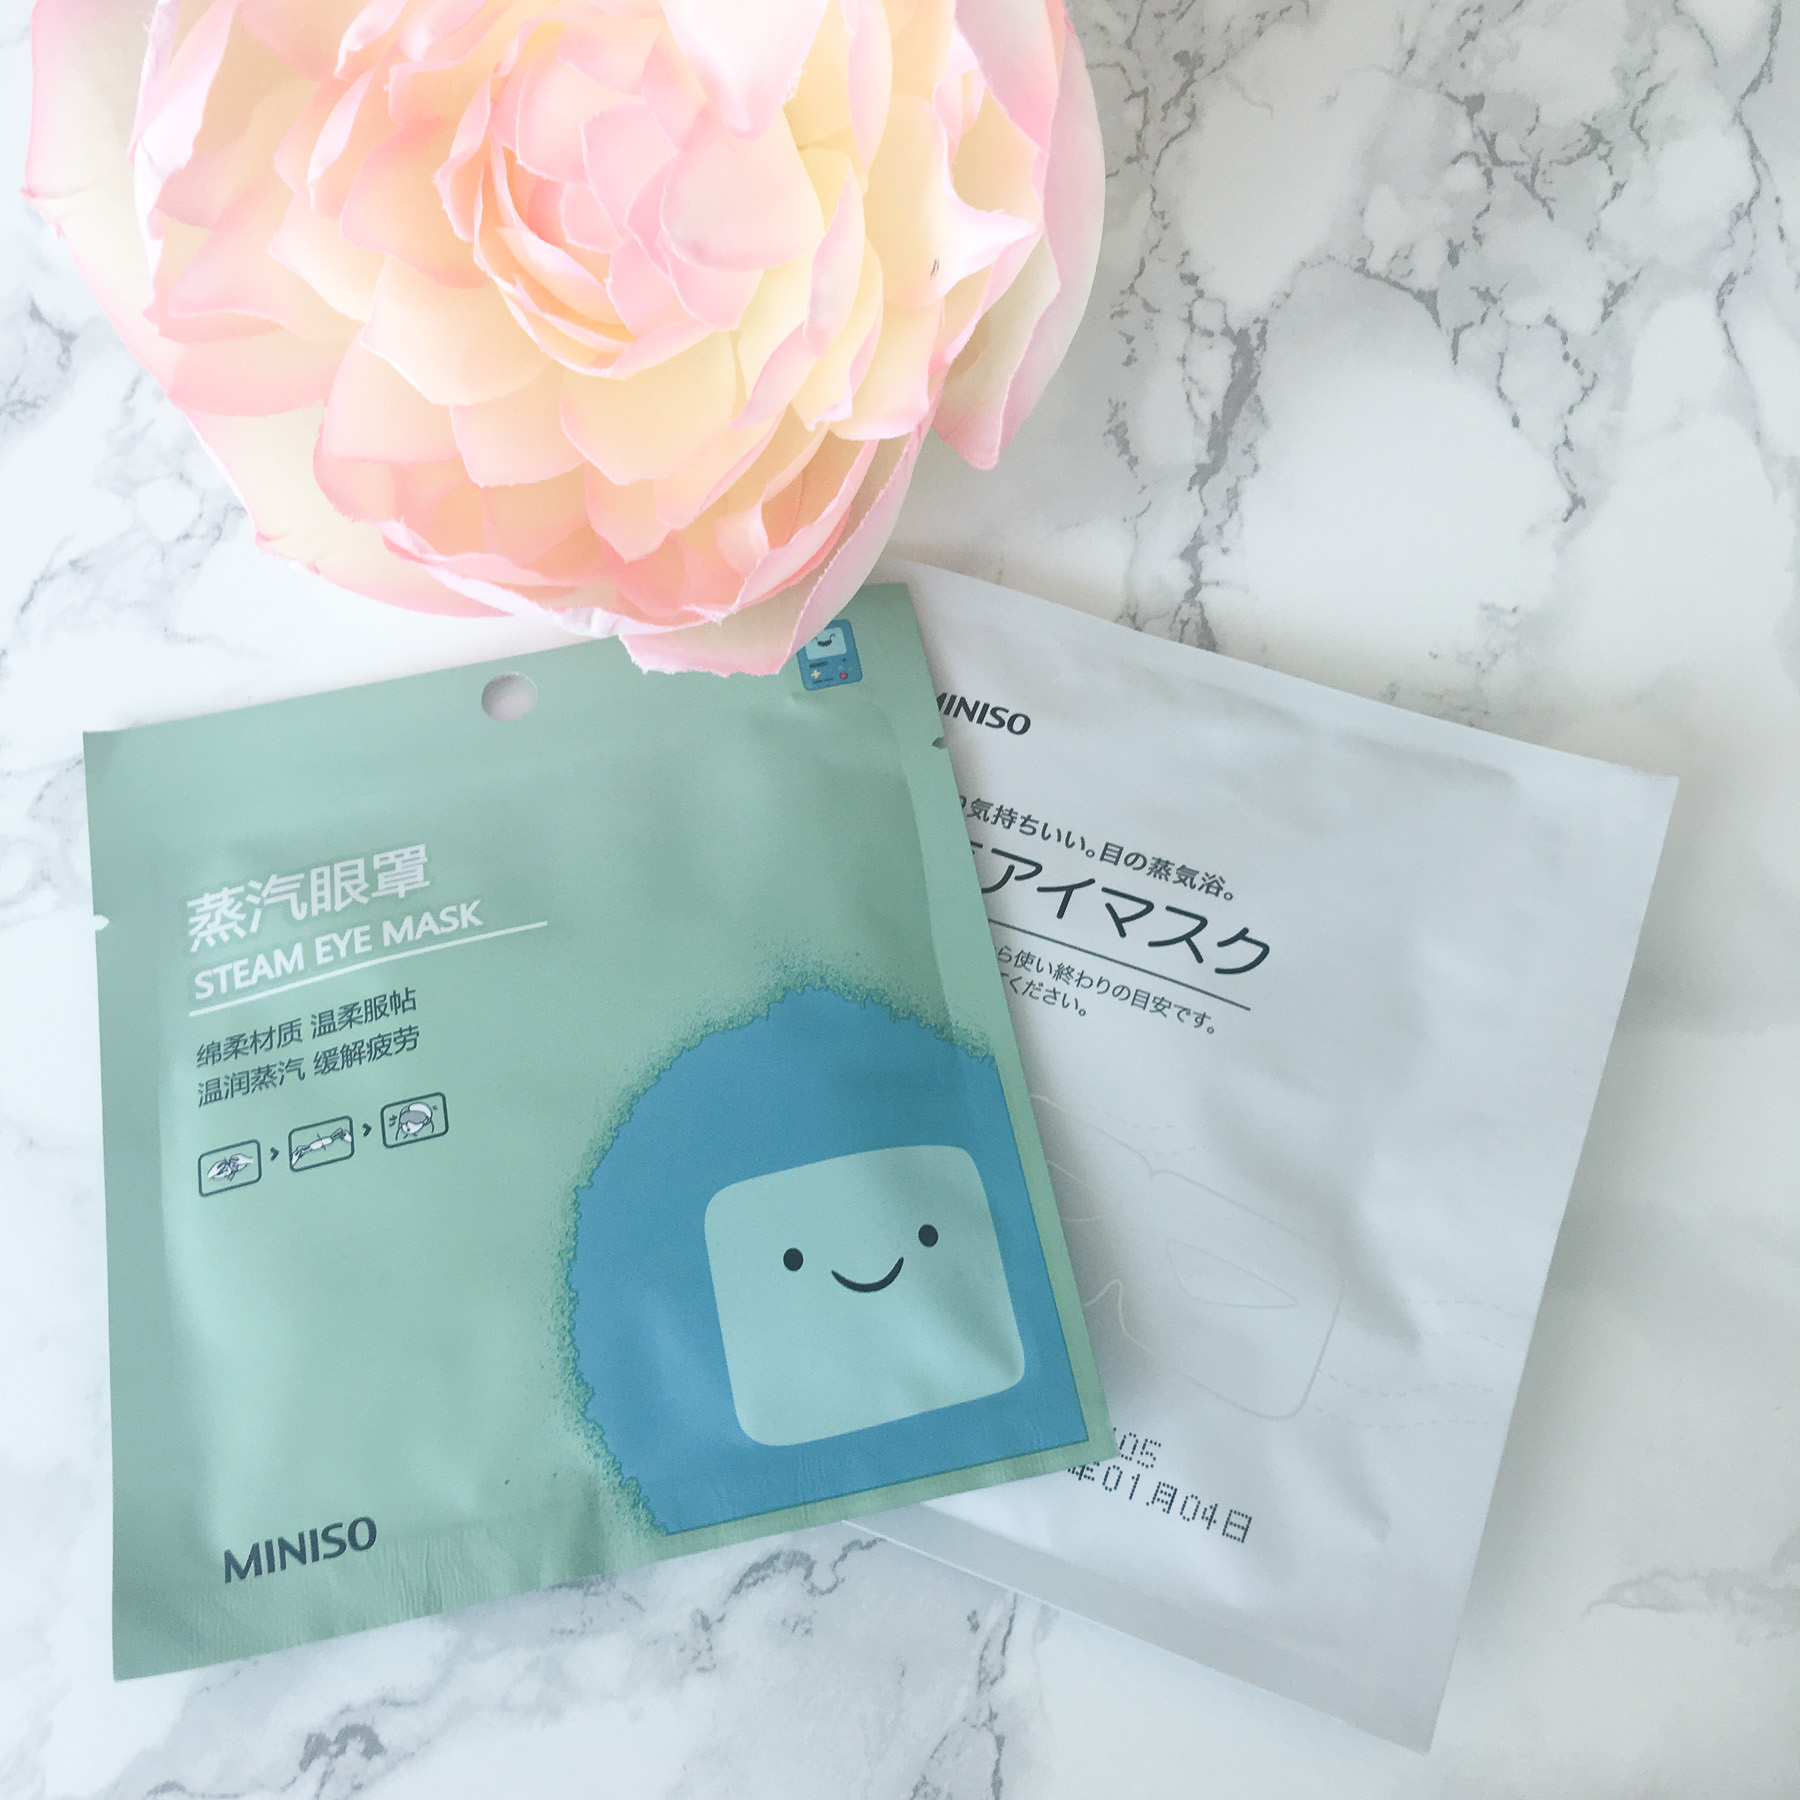 miniso disposable face mask